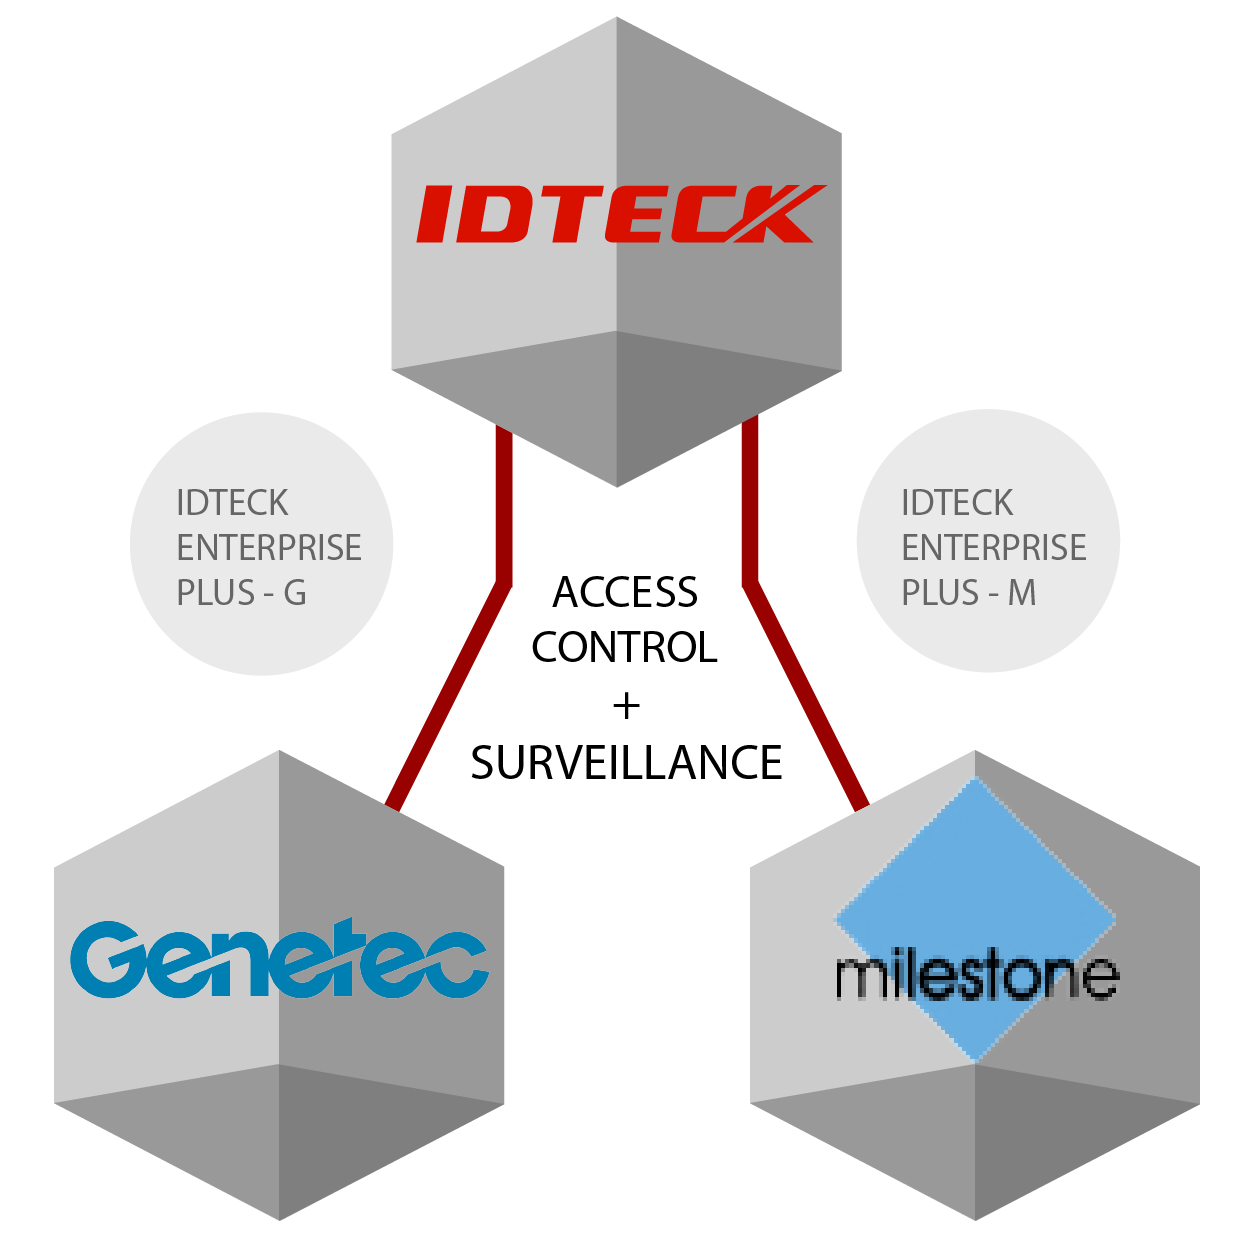 IDTECK Enterprise Plus